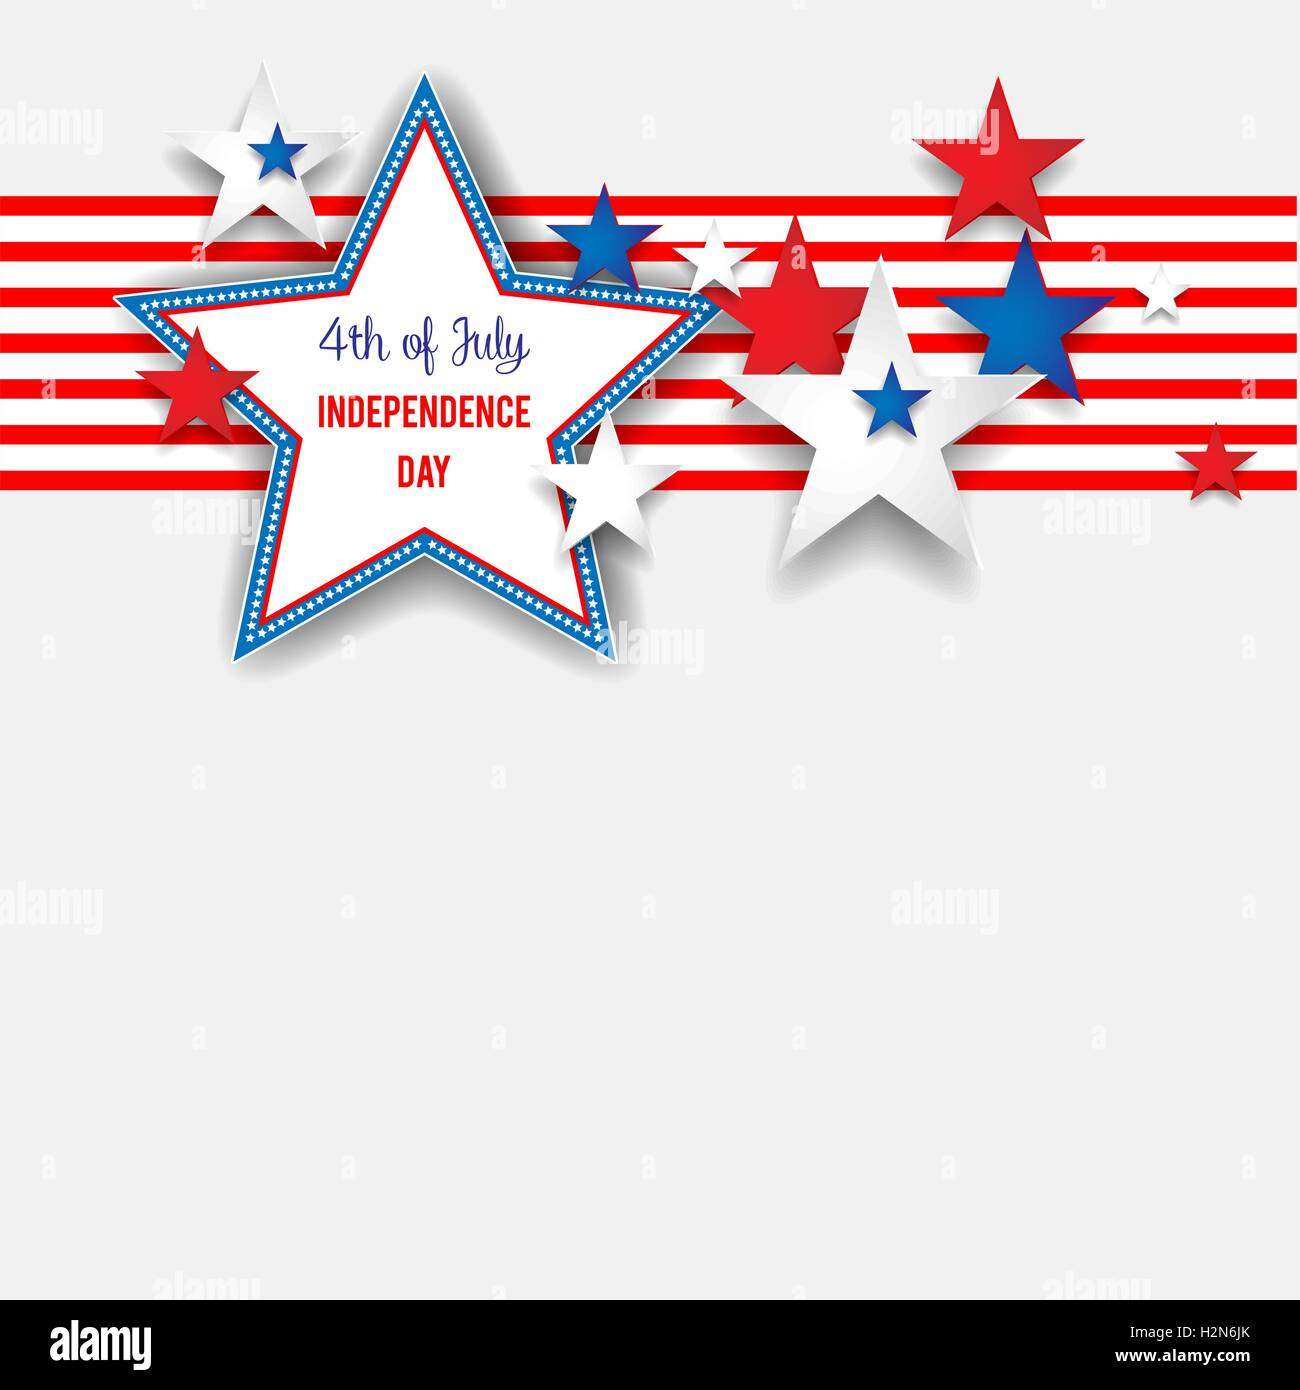 Independence day background with stars - Stock Vector